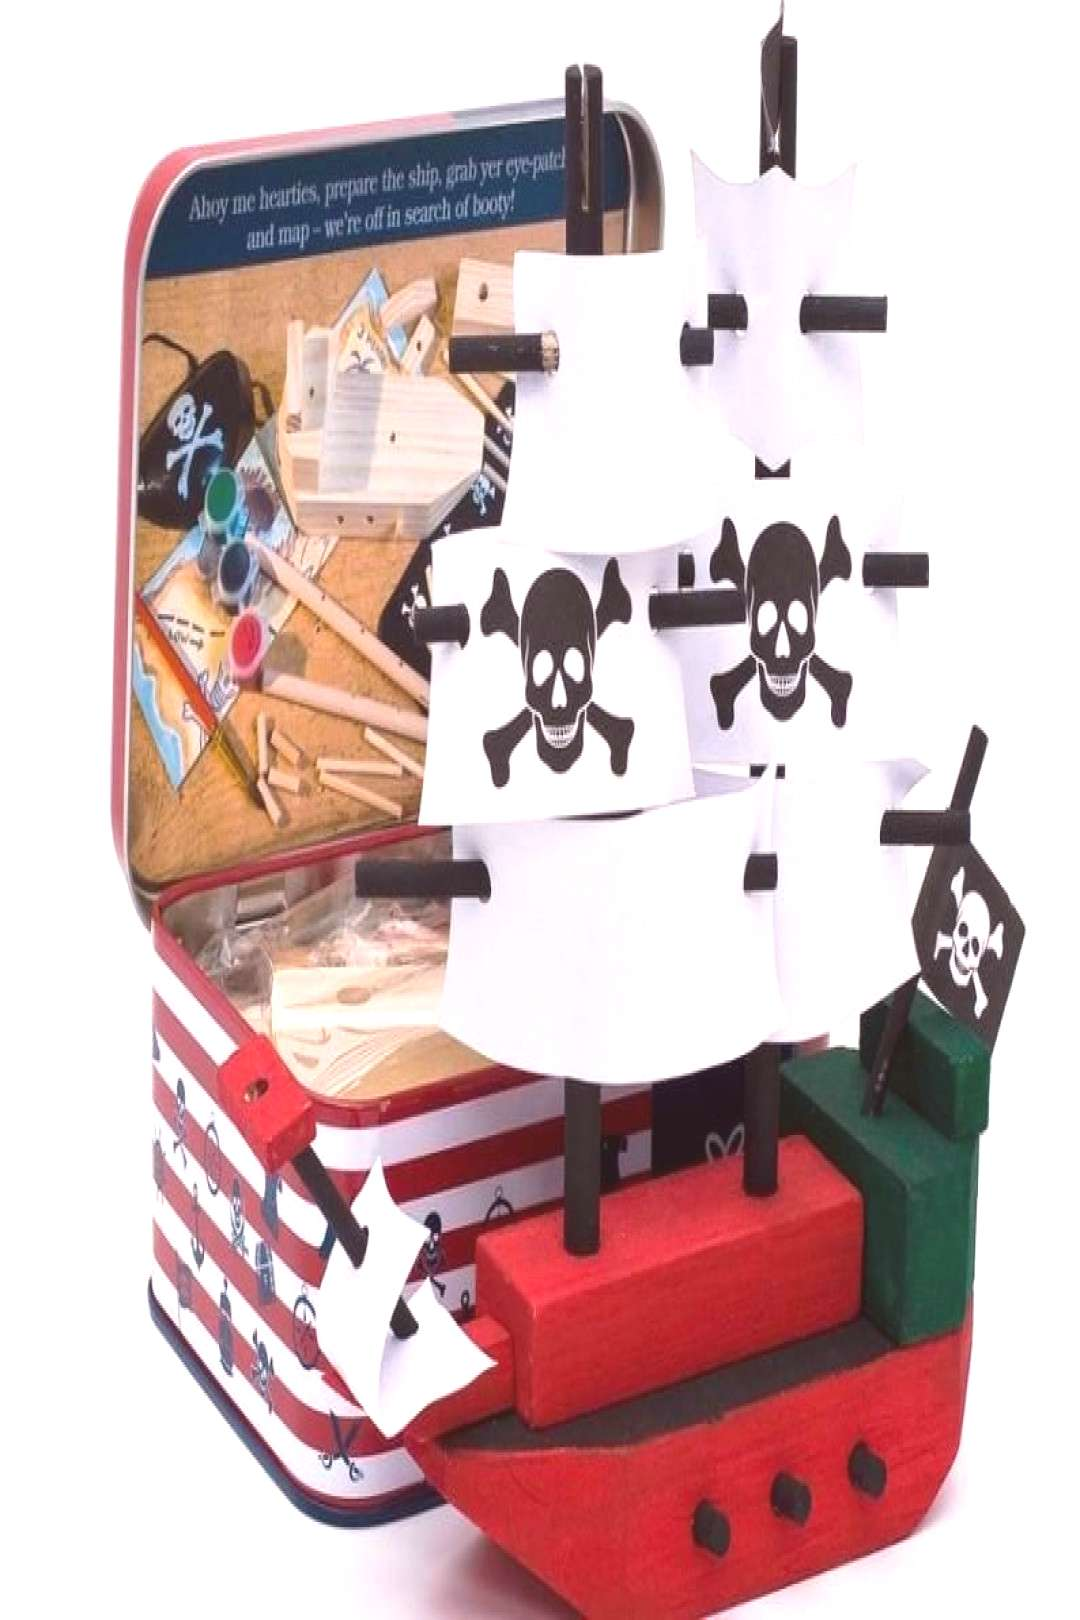 Kids craft kit build your own pirate ship This lovely childrens craft kit is packed to the brim wi